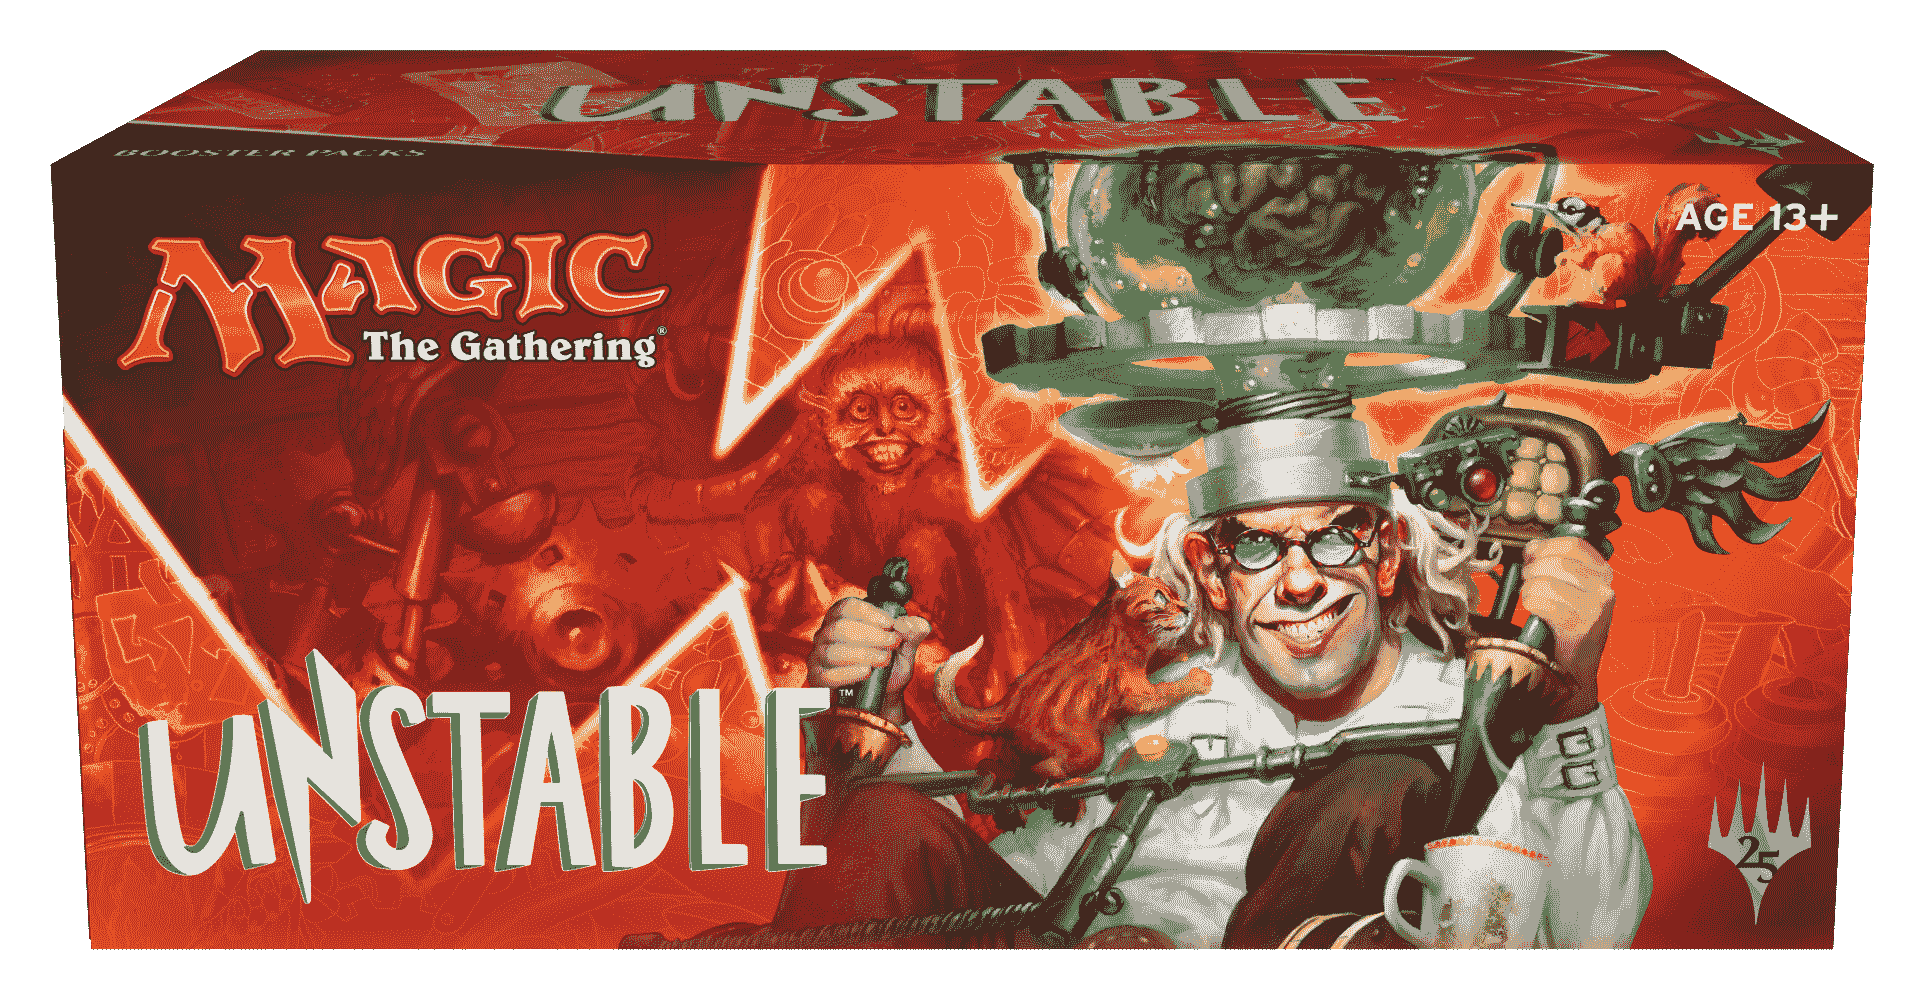 Magic the Gathering: Unstable